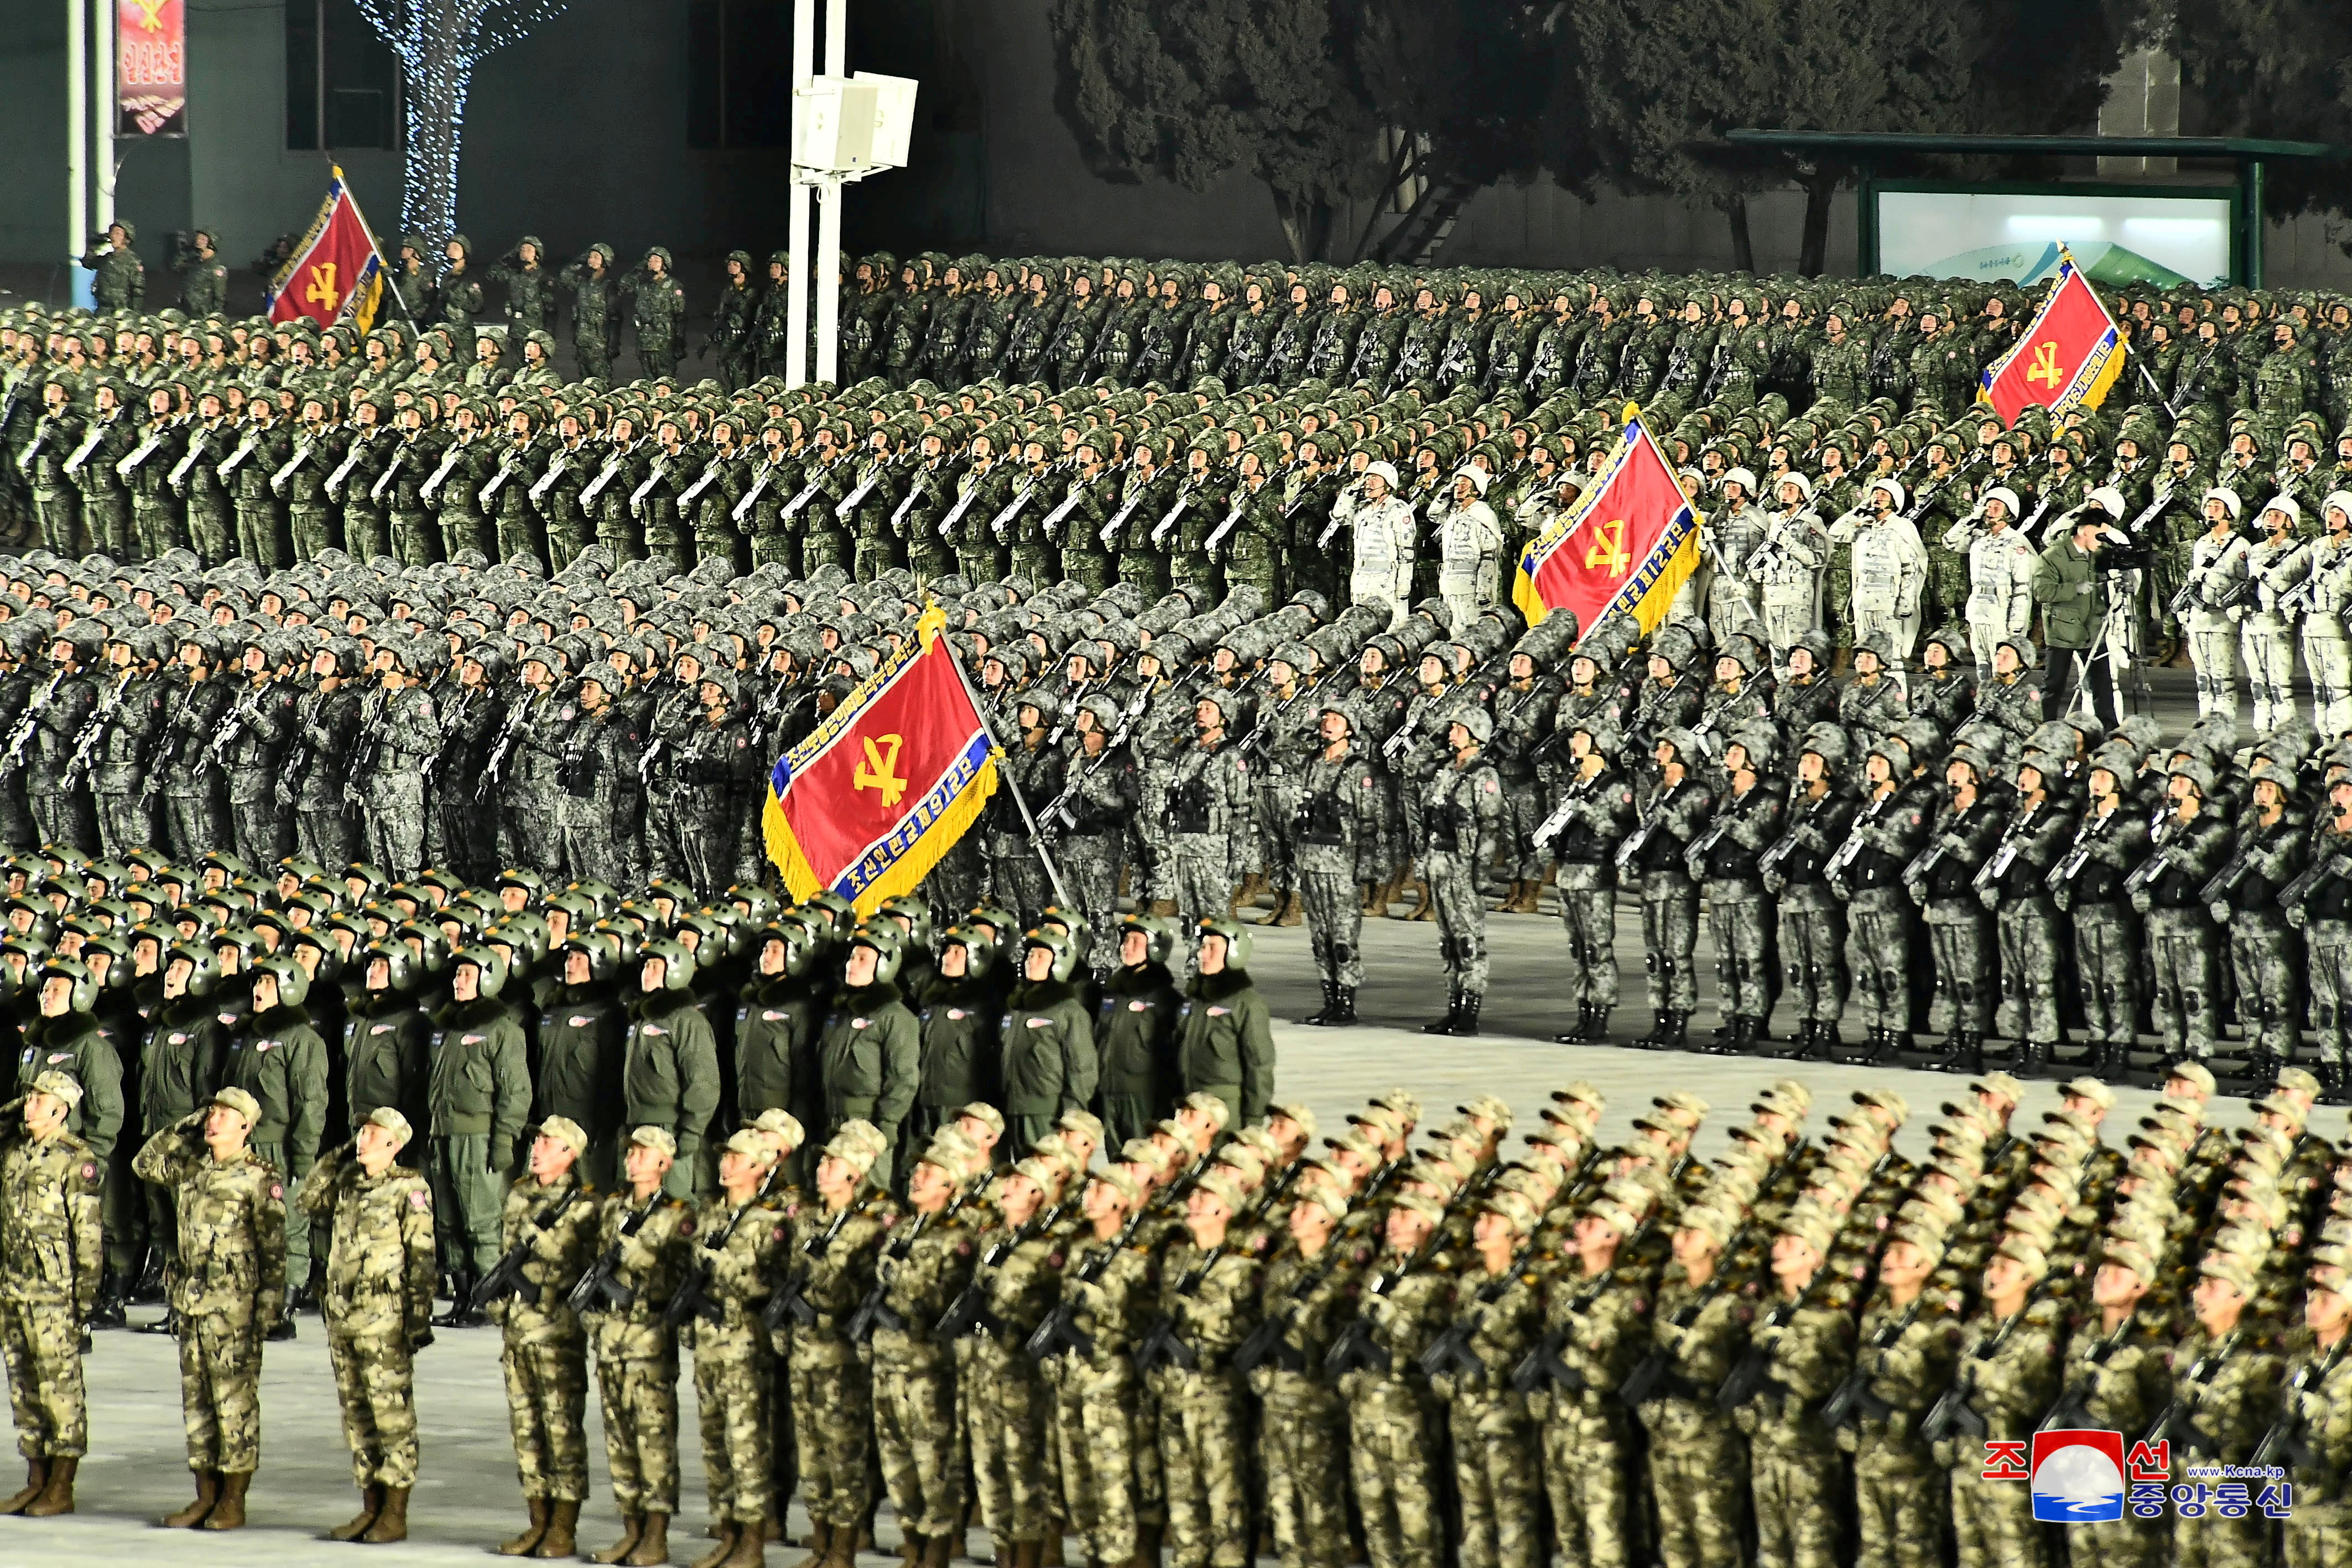 General view of a military parade to commemorate the 8th Congress of the Workers' Party in Pyongyang, North Korea January 14, 2021 in this photo supplied by North Korea's Central News Agency (KCNA).    KCNA via REUTERS